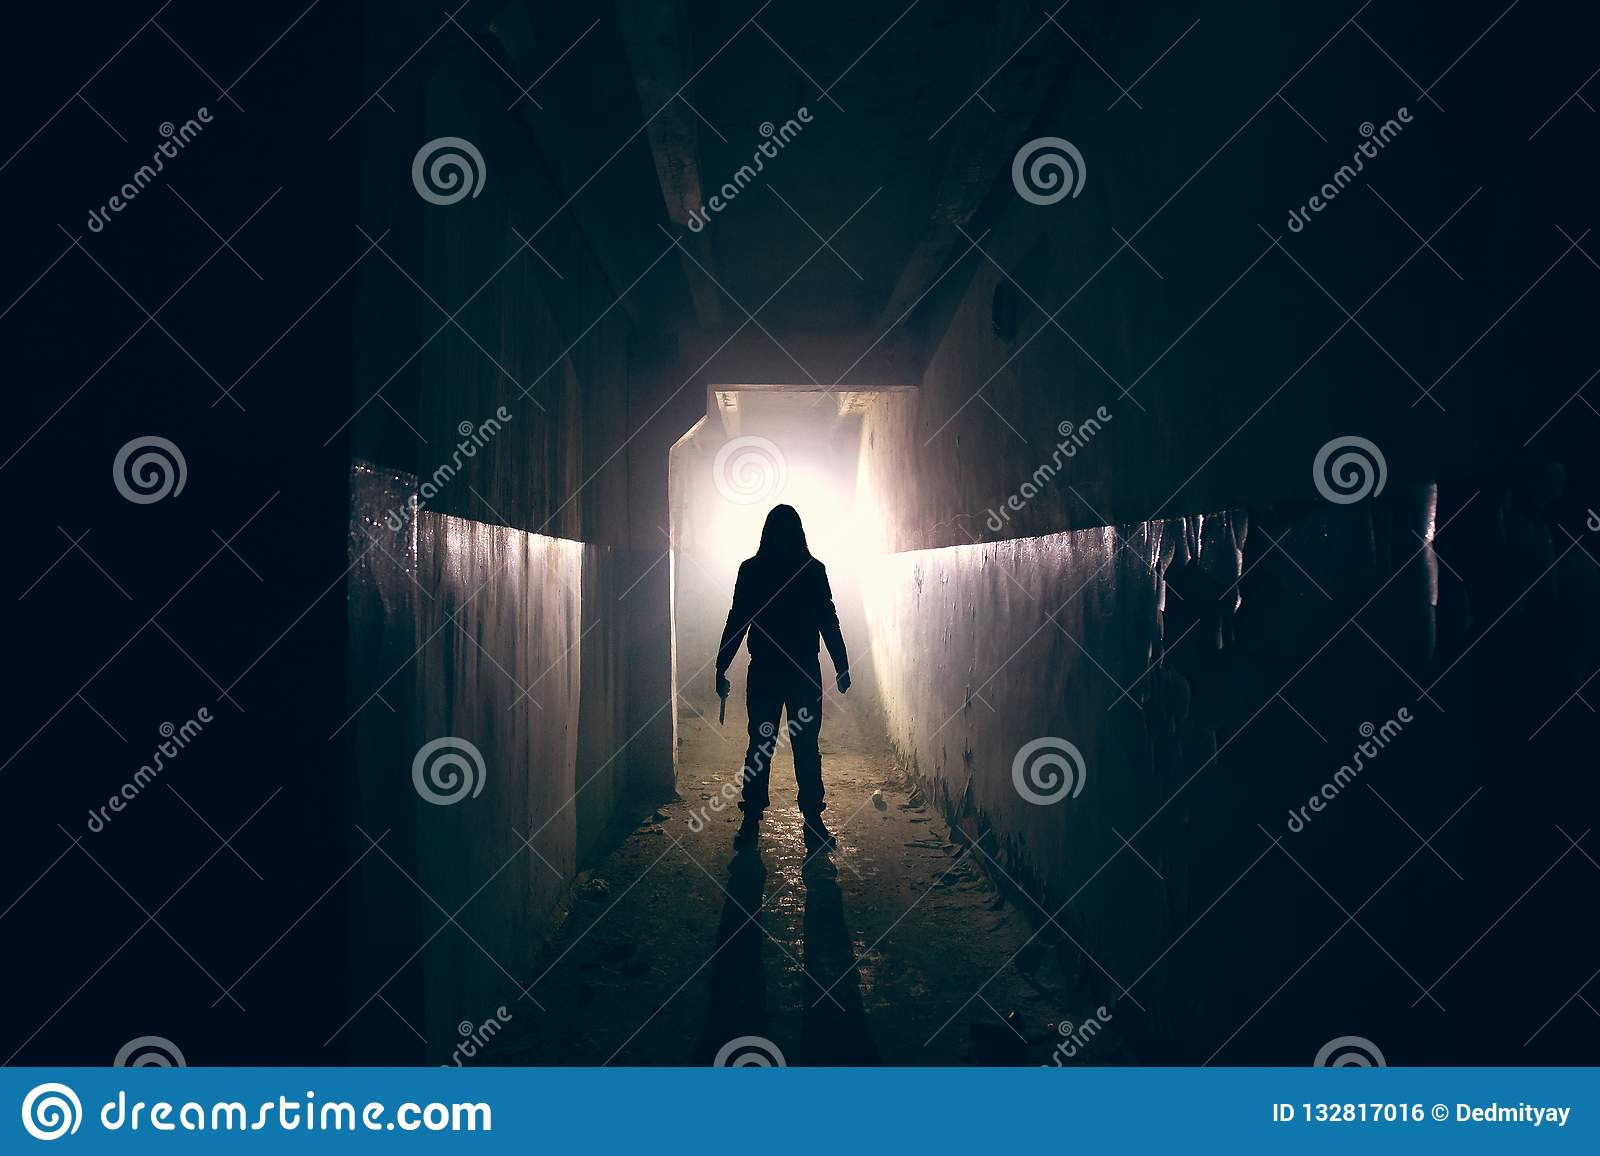 Silhouette of maniac with knife in hand in long dark creepy corridor, horror psycho maniac or serial killer concept